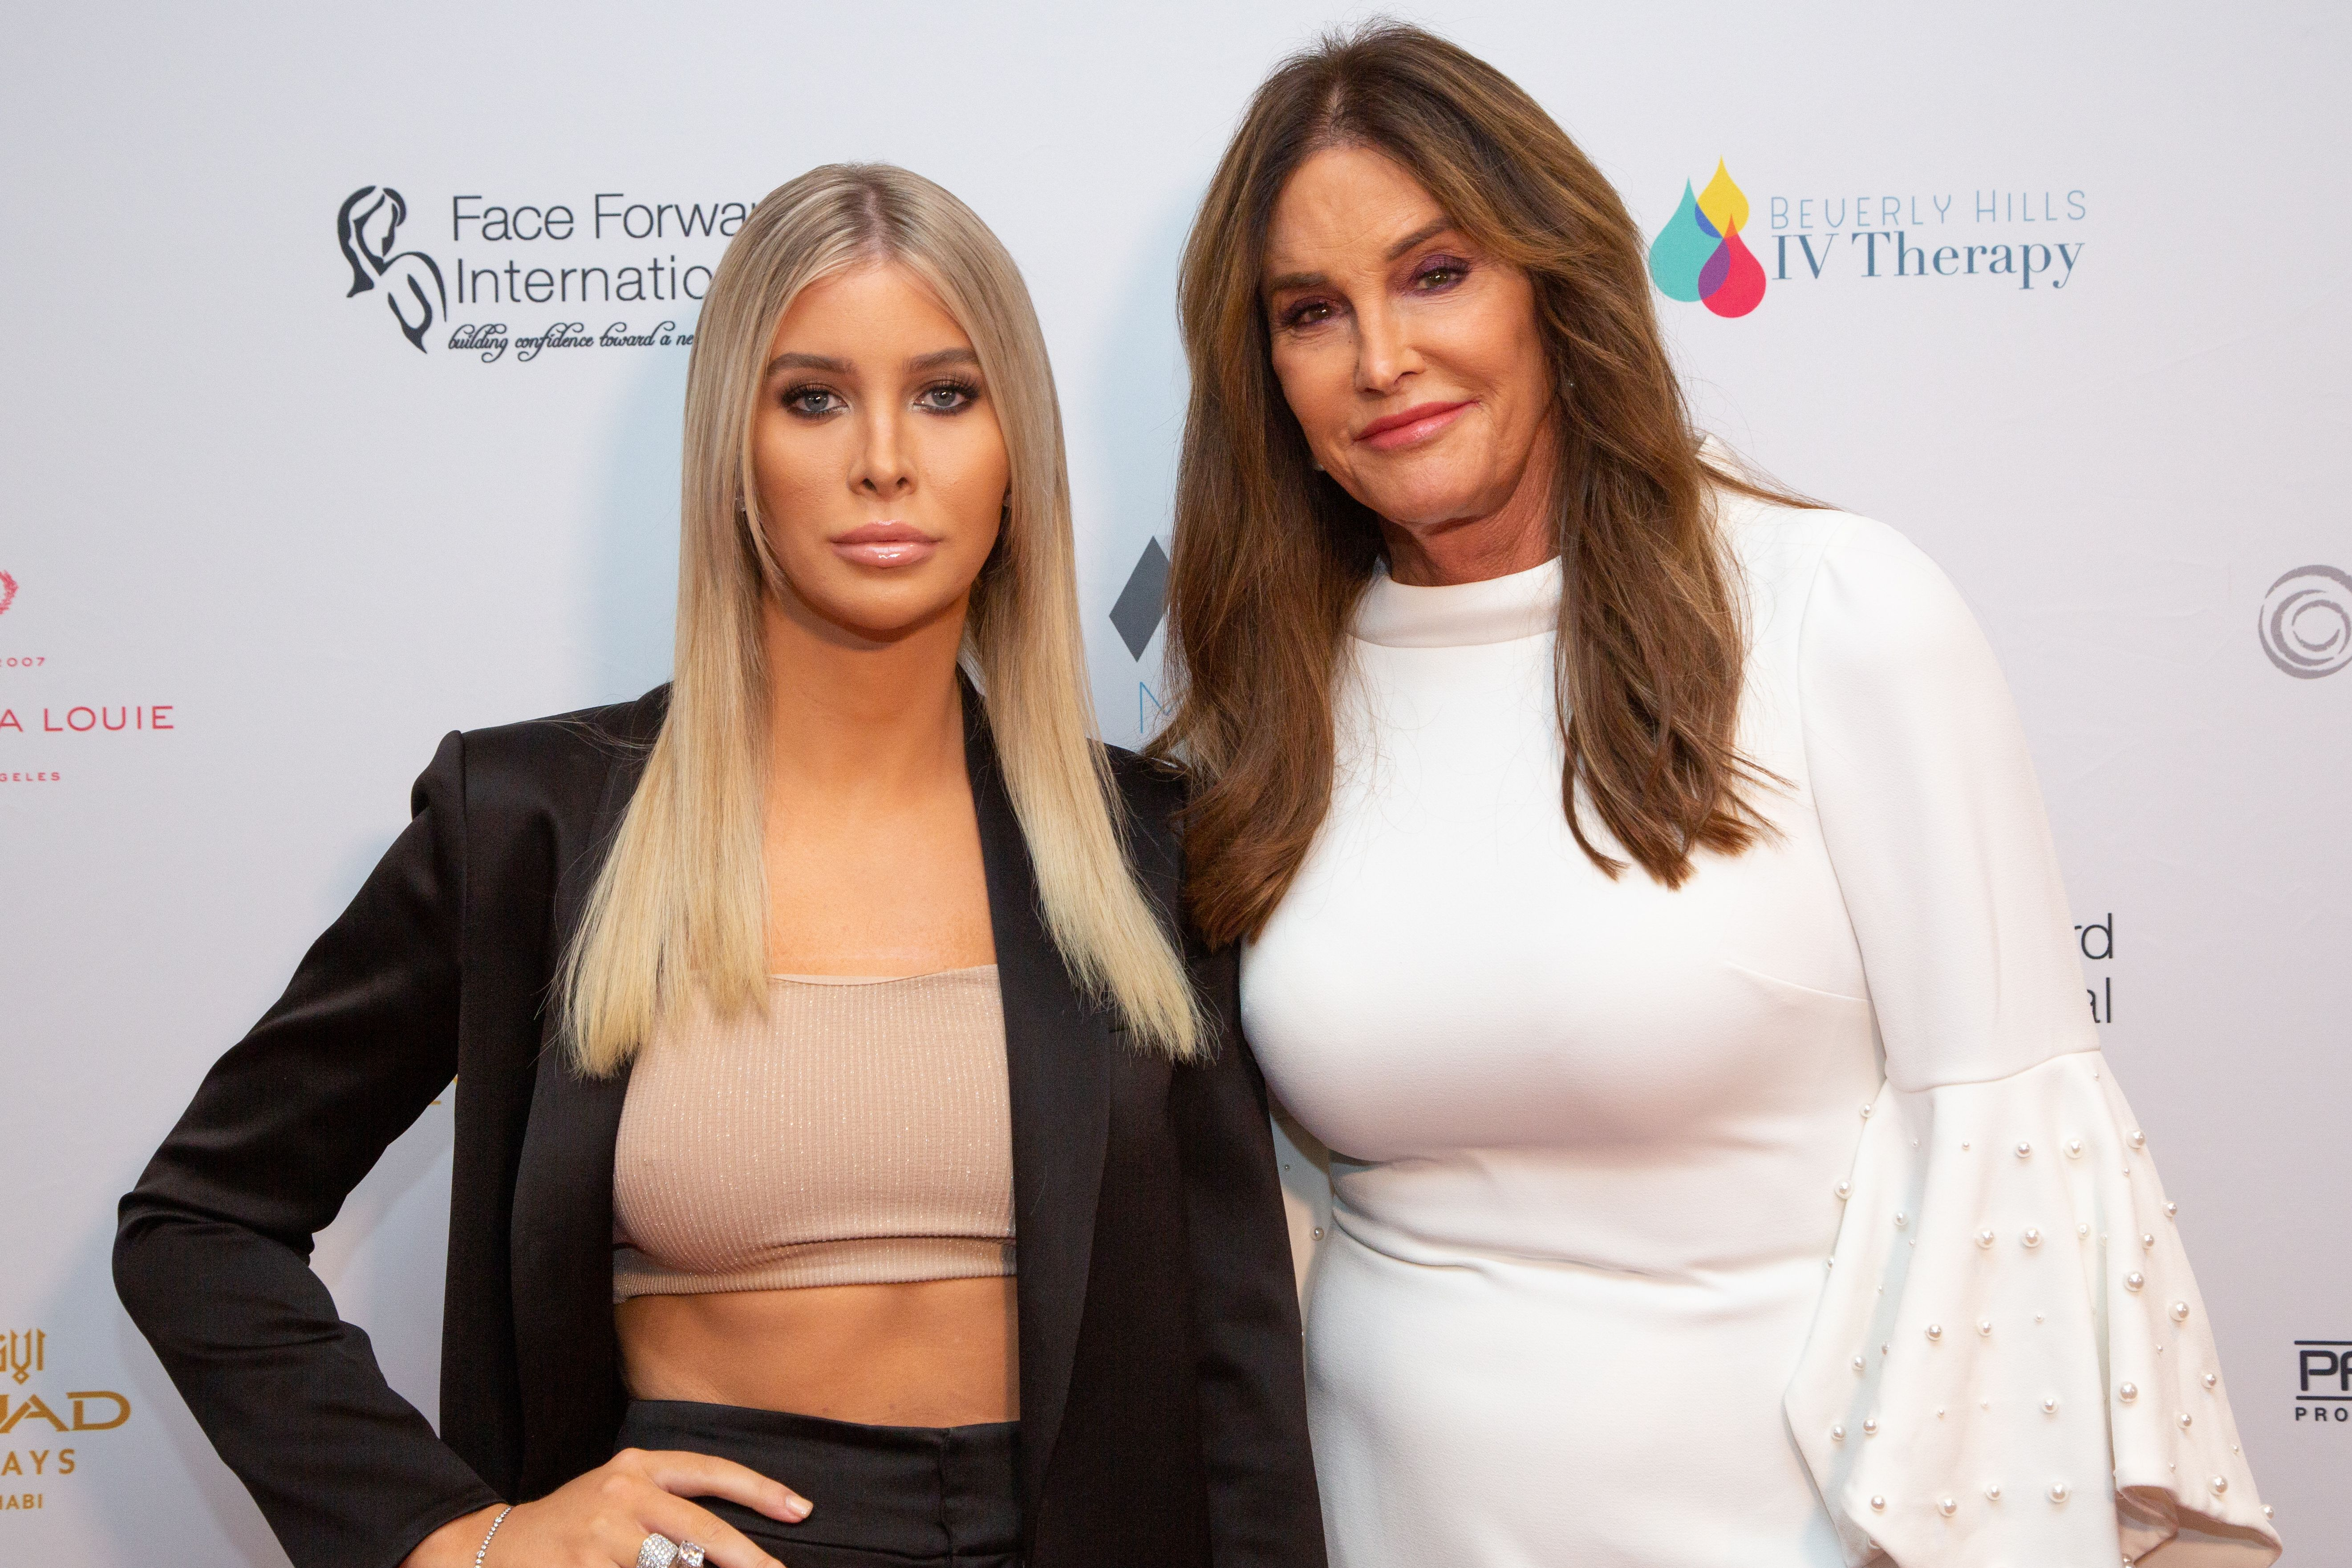 Sophia Hutchins (left) poses with Caitlyn Jenner (right)